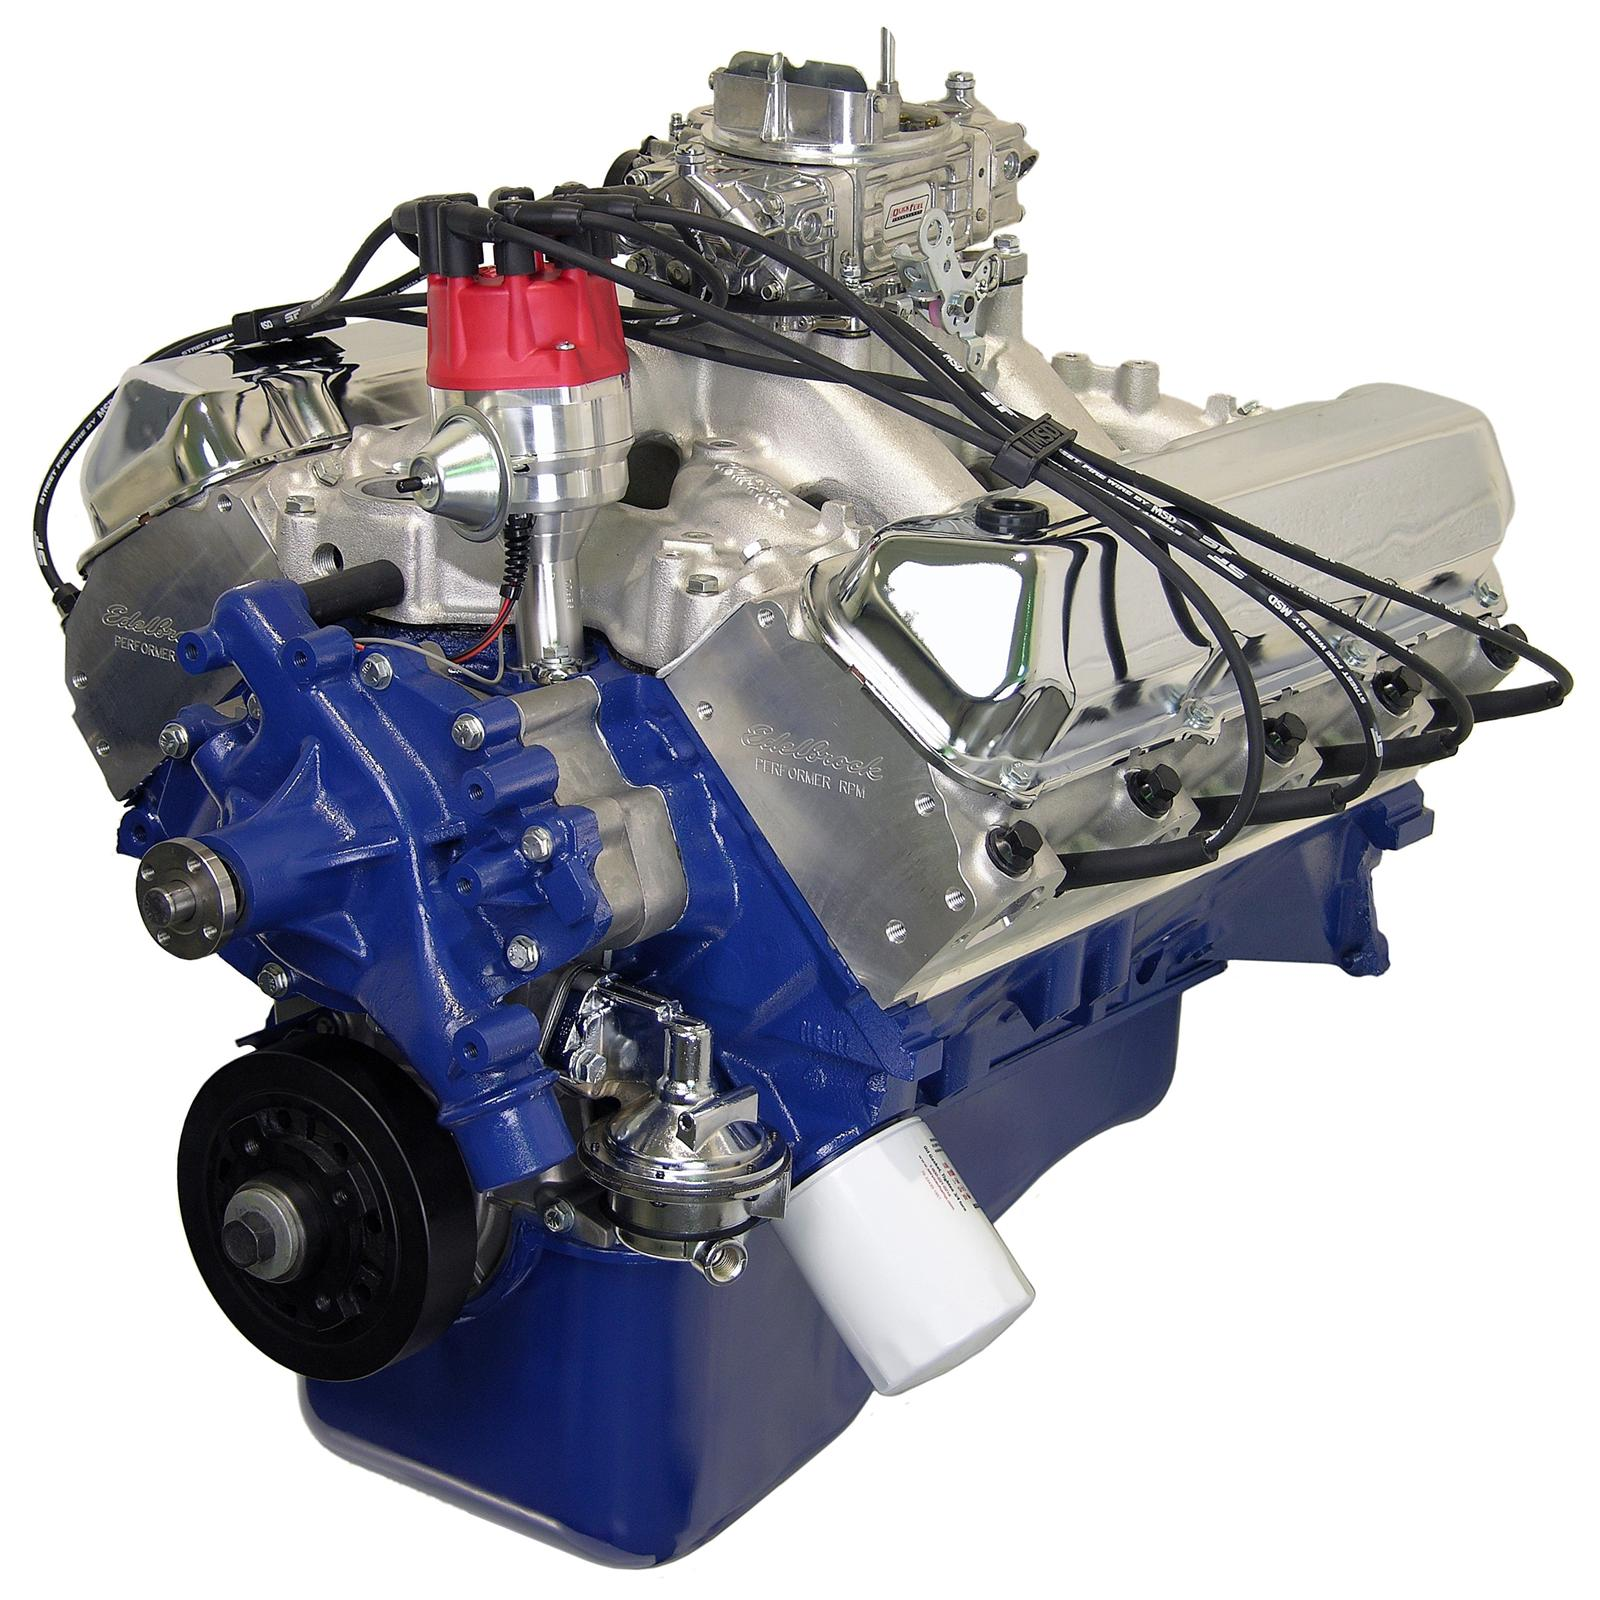 Atk High Performance Ford 460 525 Stage 3 Crate Engine